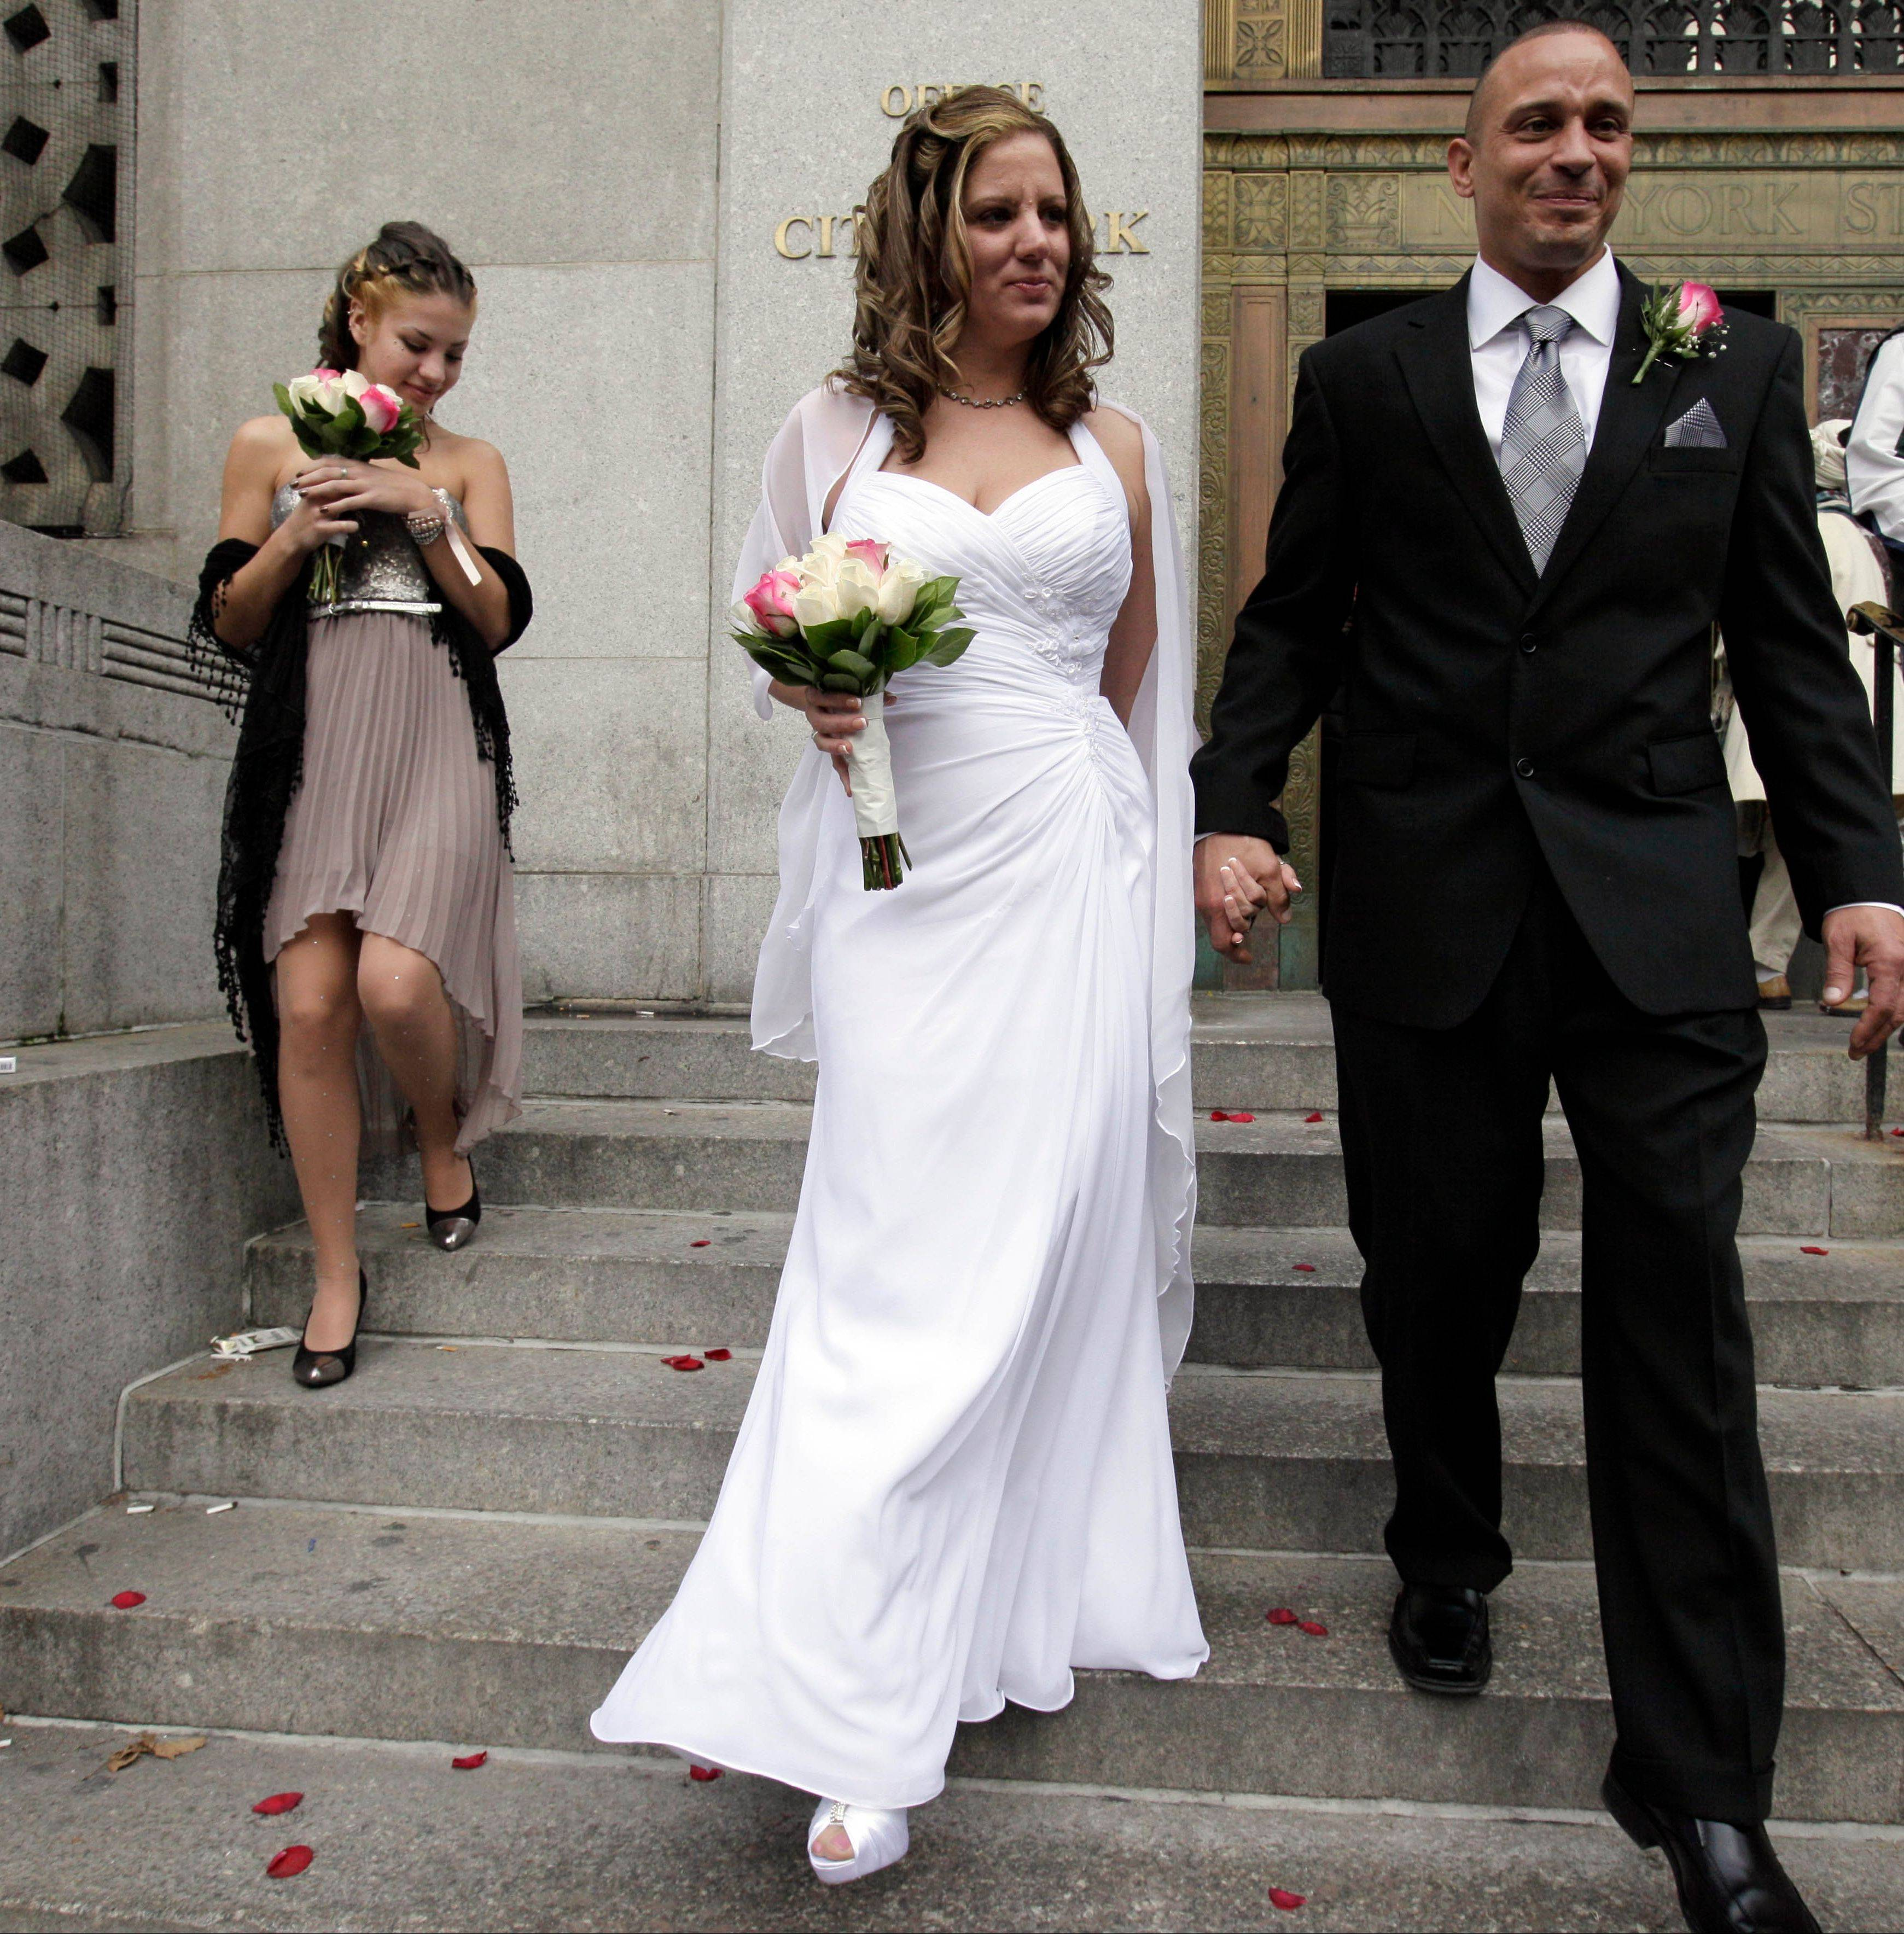 Harold, right, and Parcia Hochhauser, of the Brooklyn borough of New York, and her daughter, Pricilla Pardo, left, leave the Office of the City Clerk in New York Wednesday after their wedding.